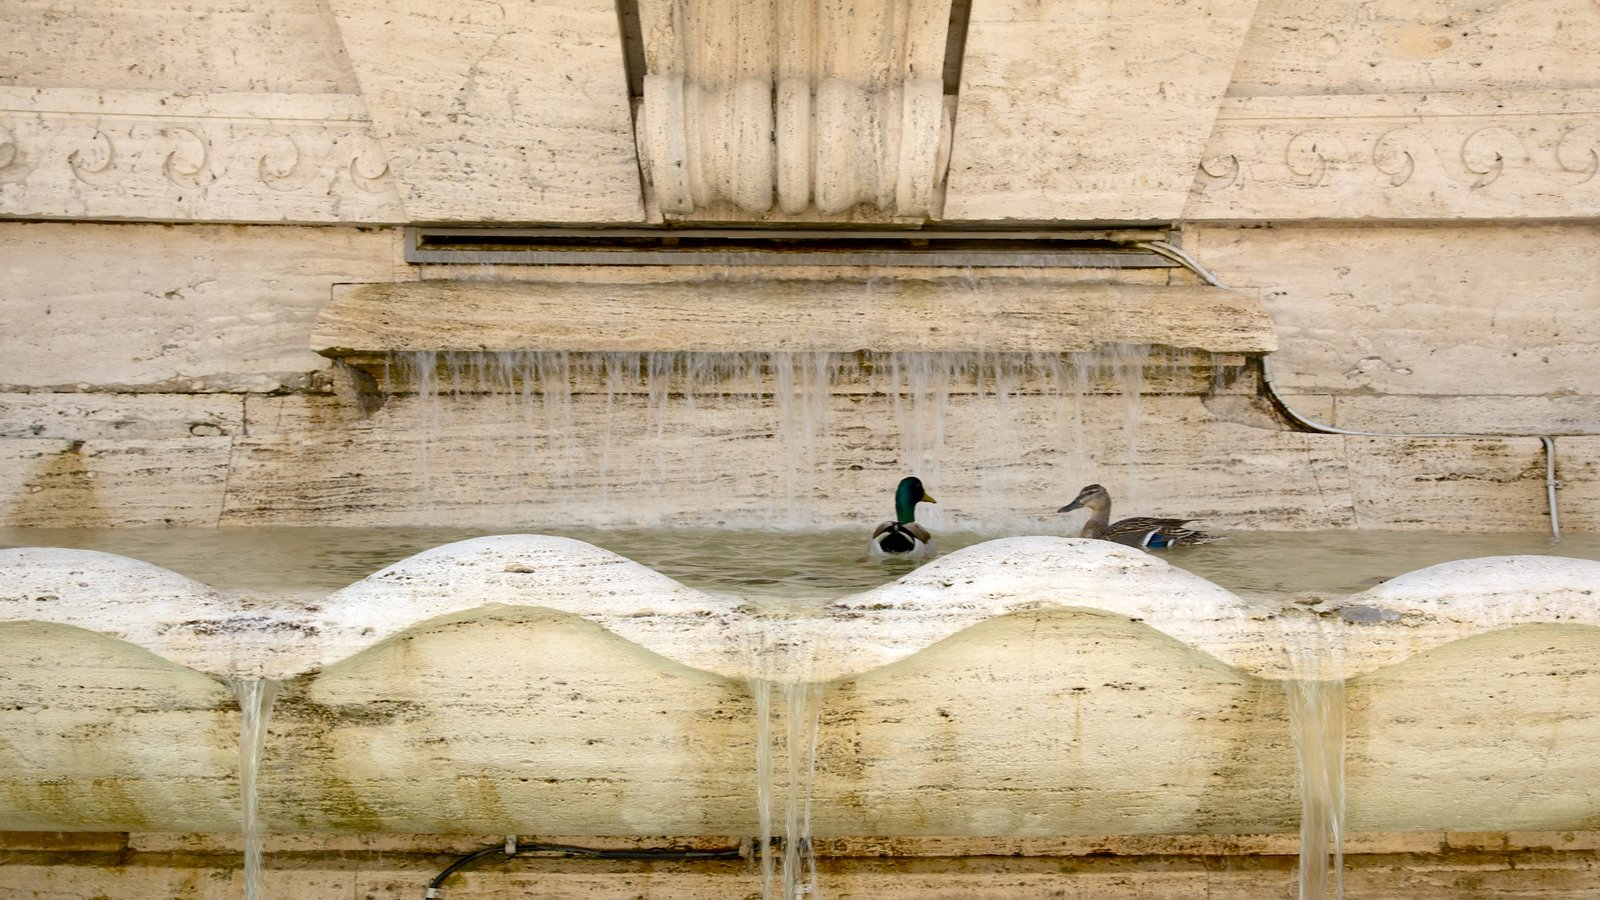 Prati featuring bird life, heritage architecture and a fountain